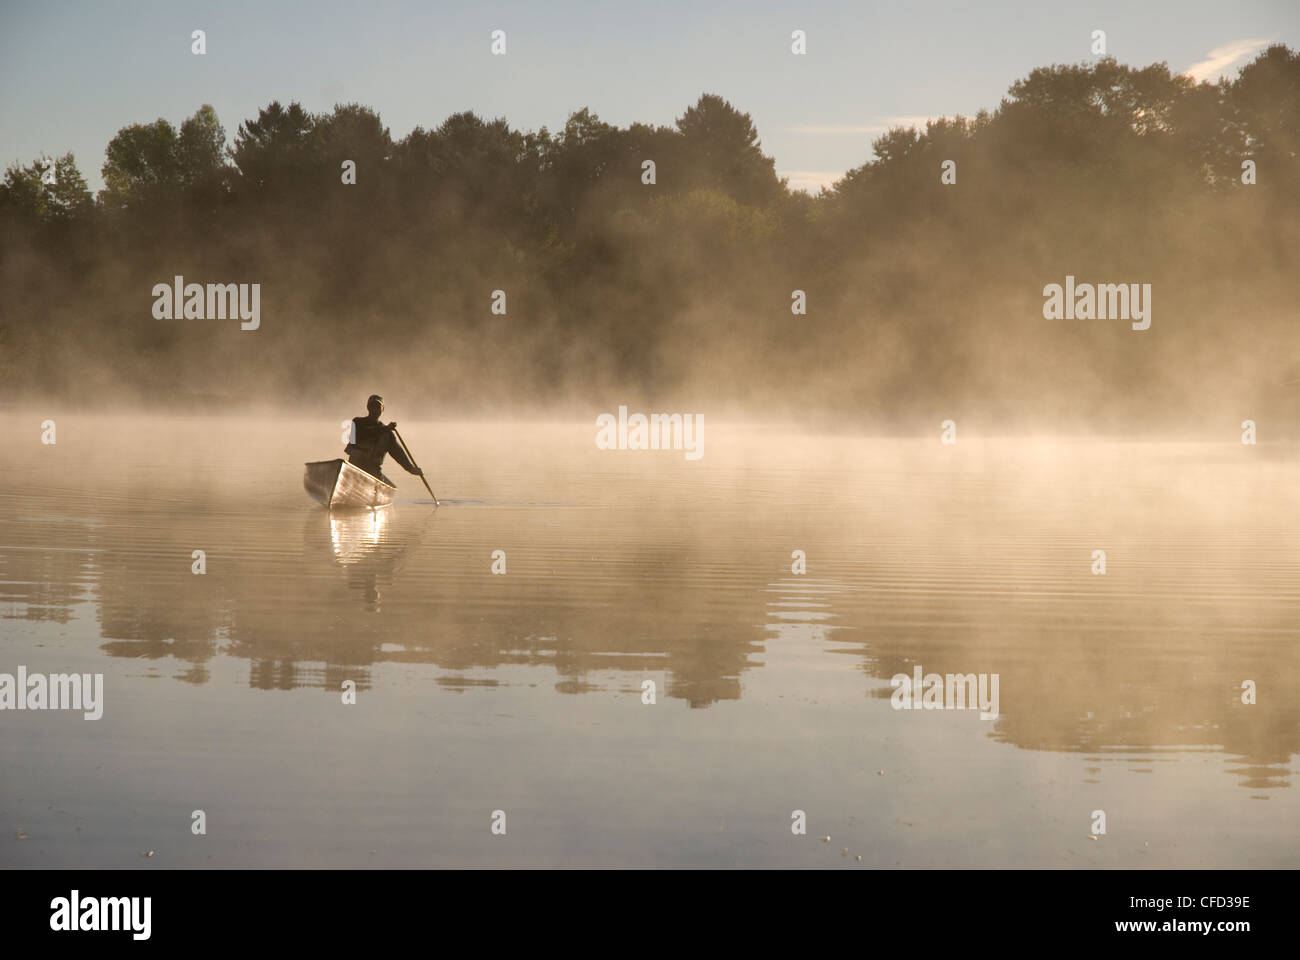 Solo Paddler on the Severn River in Muskoka, Ontario, Canada - Stock Image